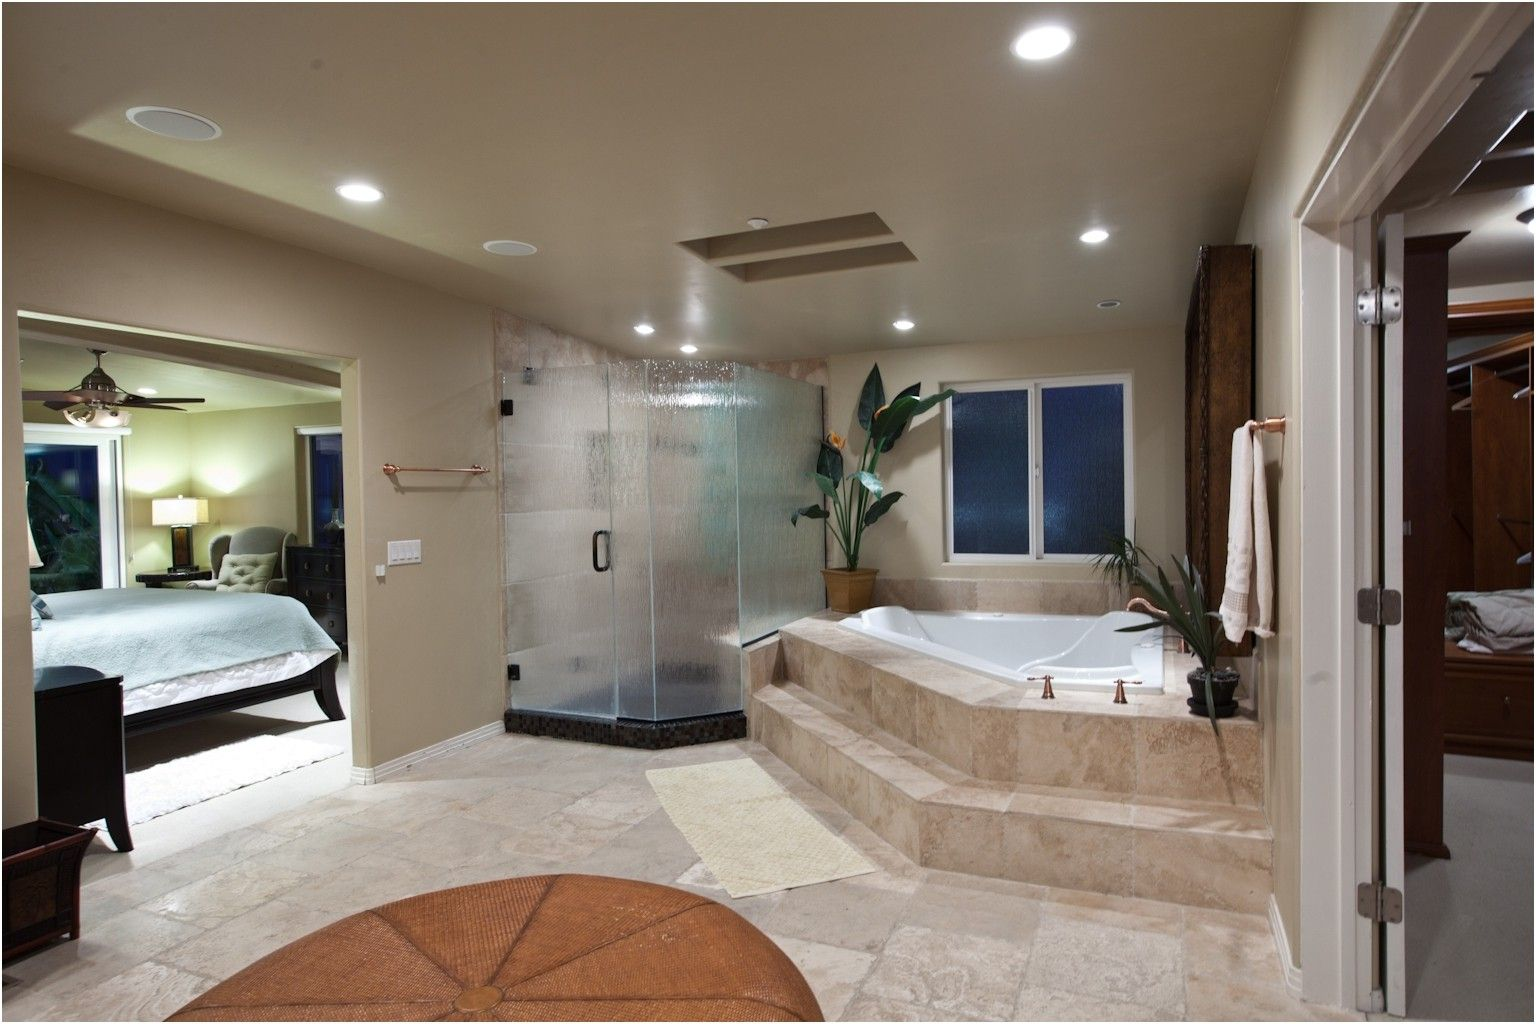 Master bedroom bathroom  master bedroom with bathroom design  modern bed designsbest